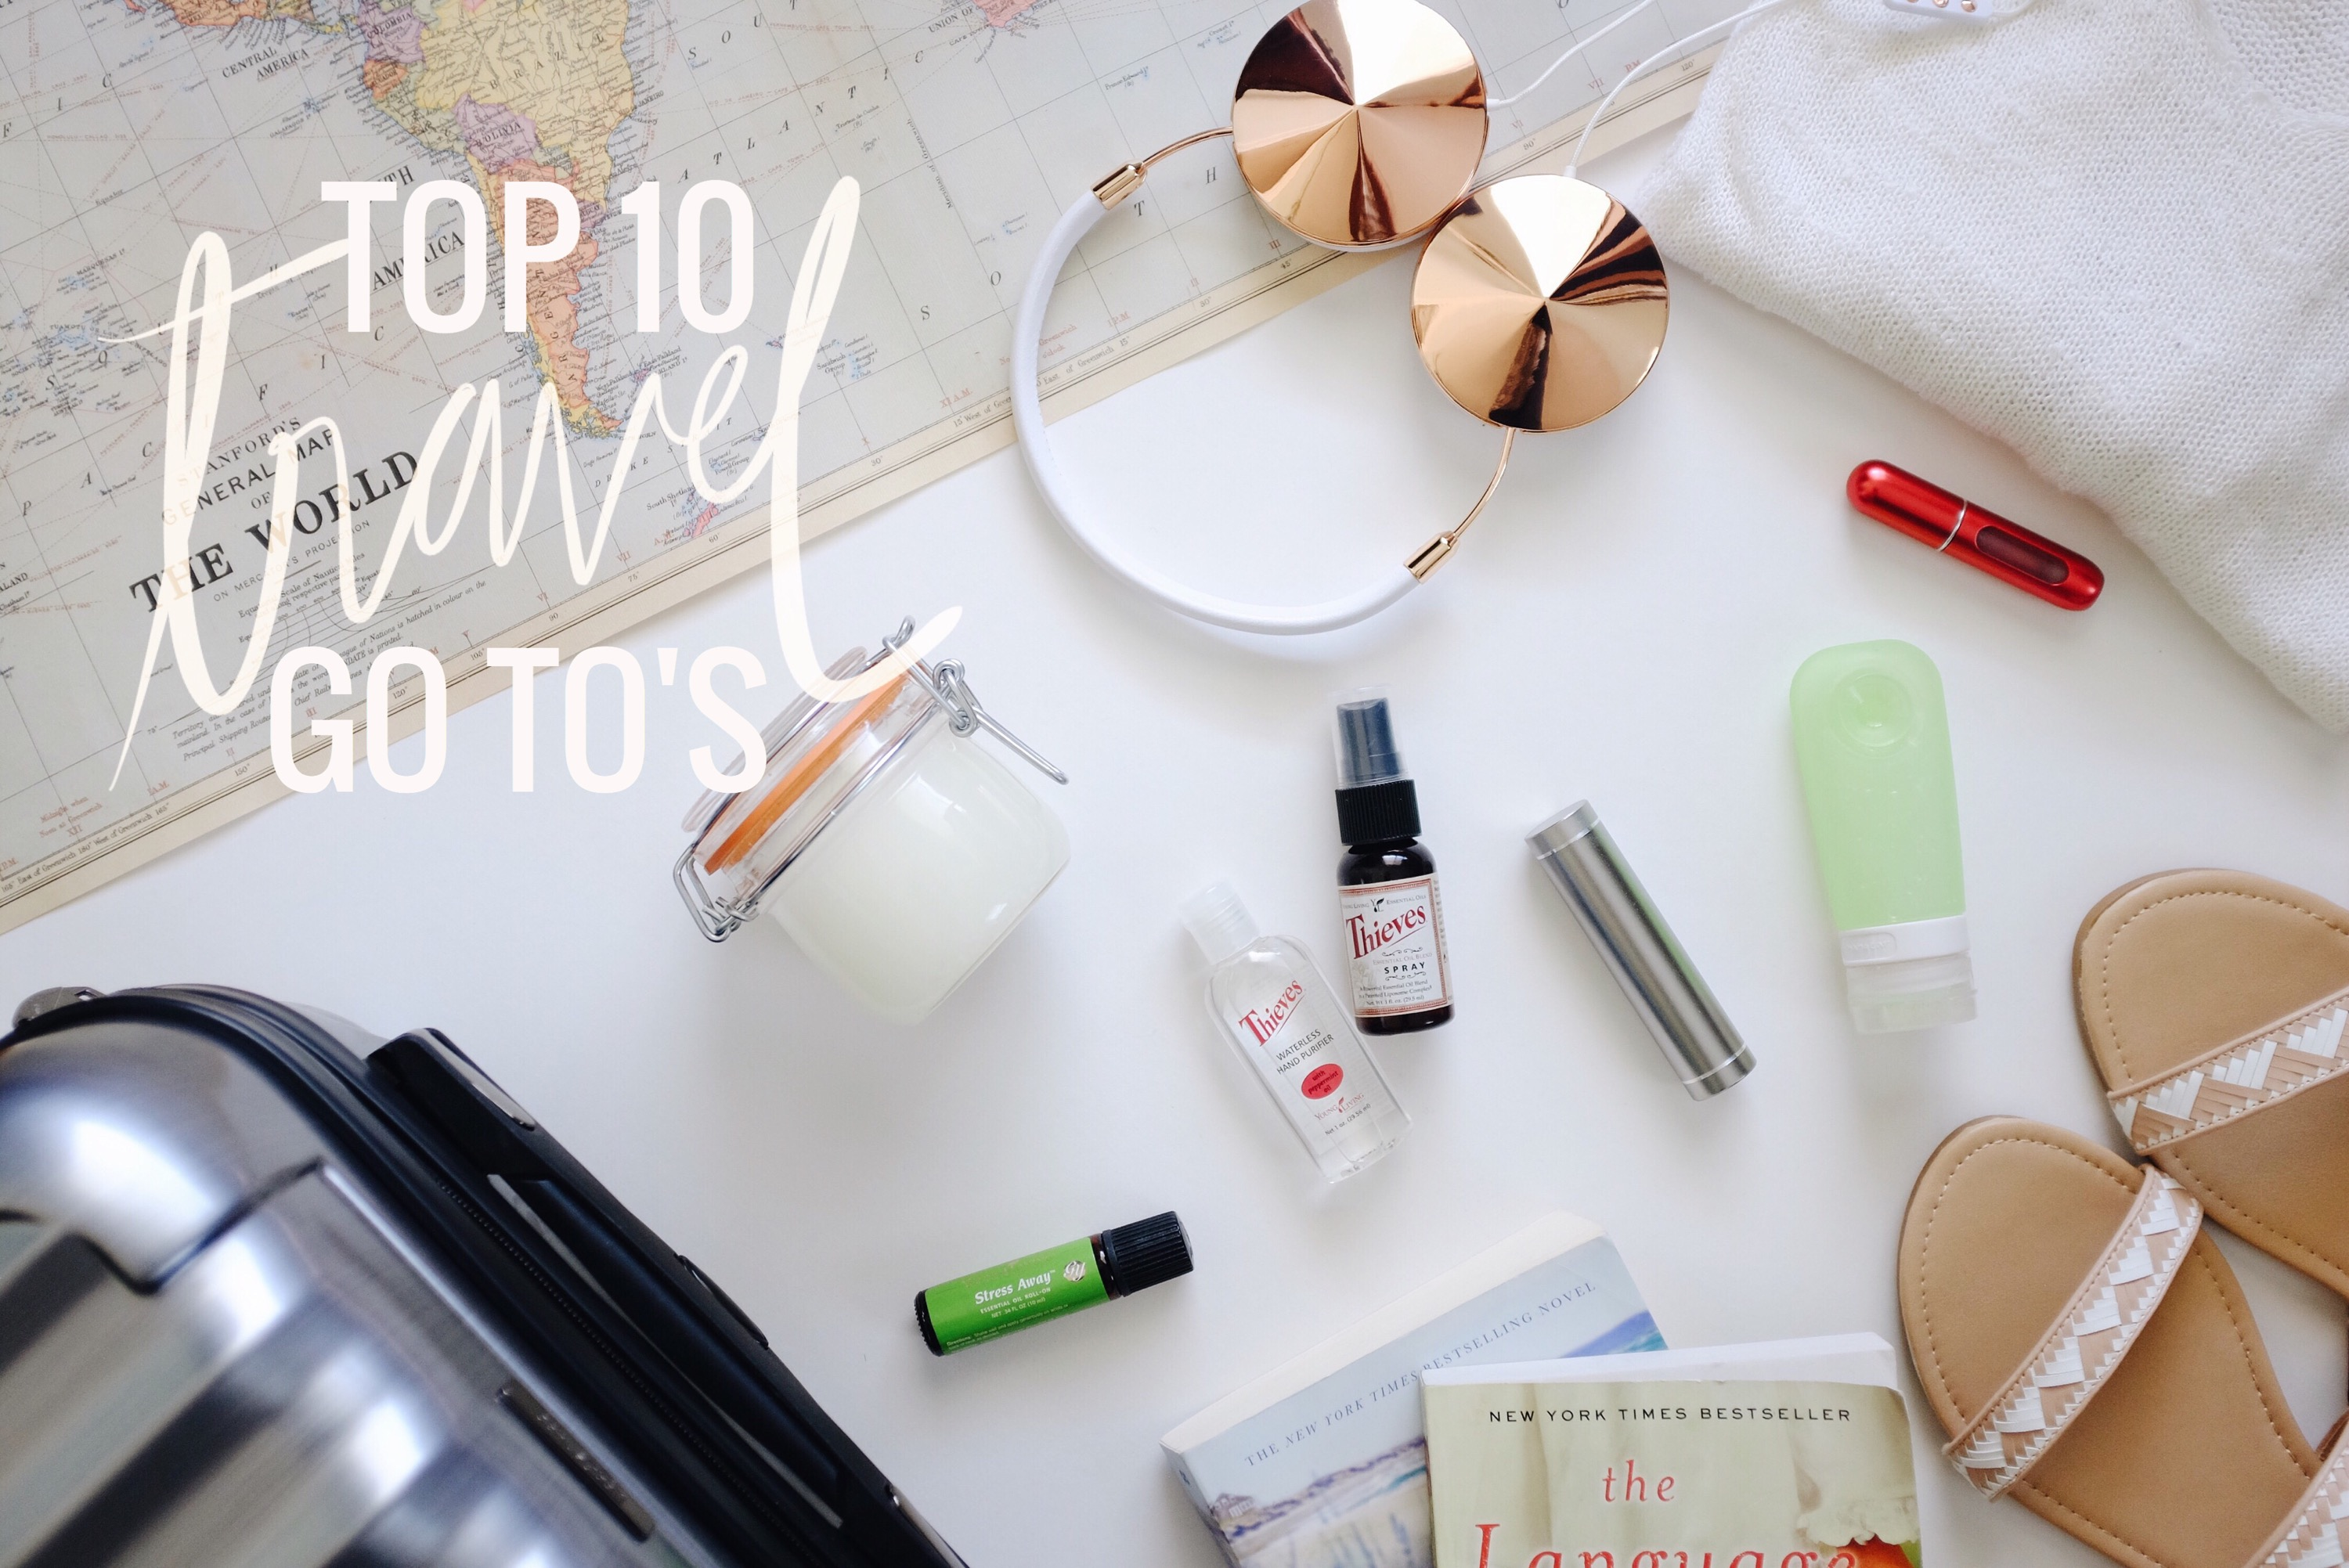 TOP 10 TRAVEL MUST HAVES - elanaloo.com